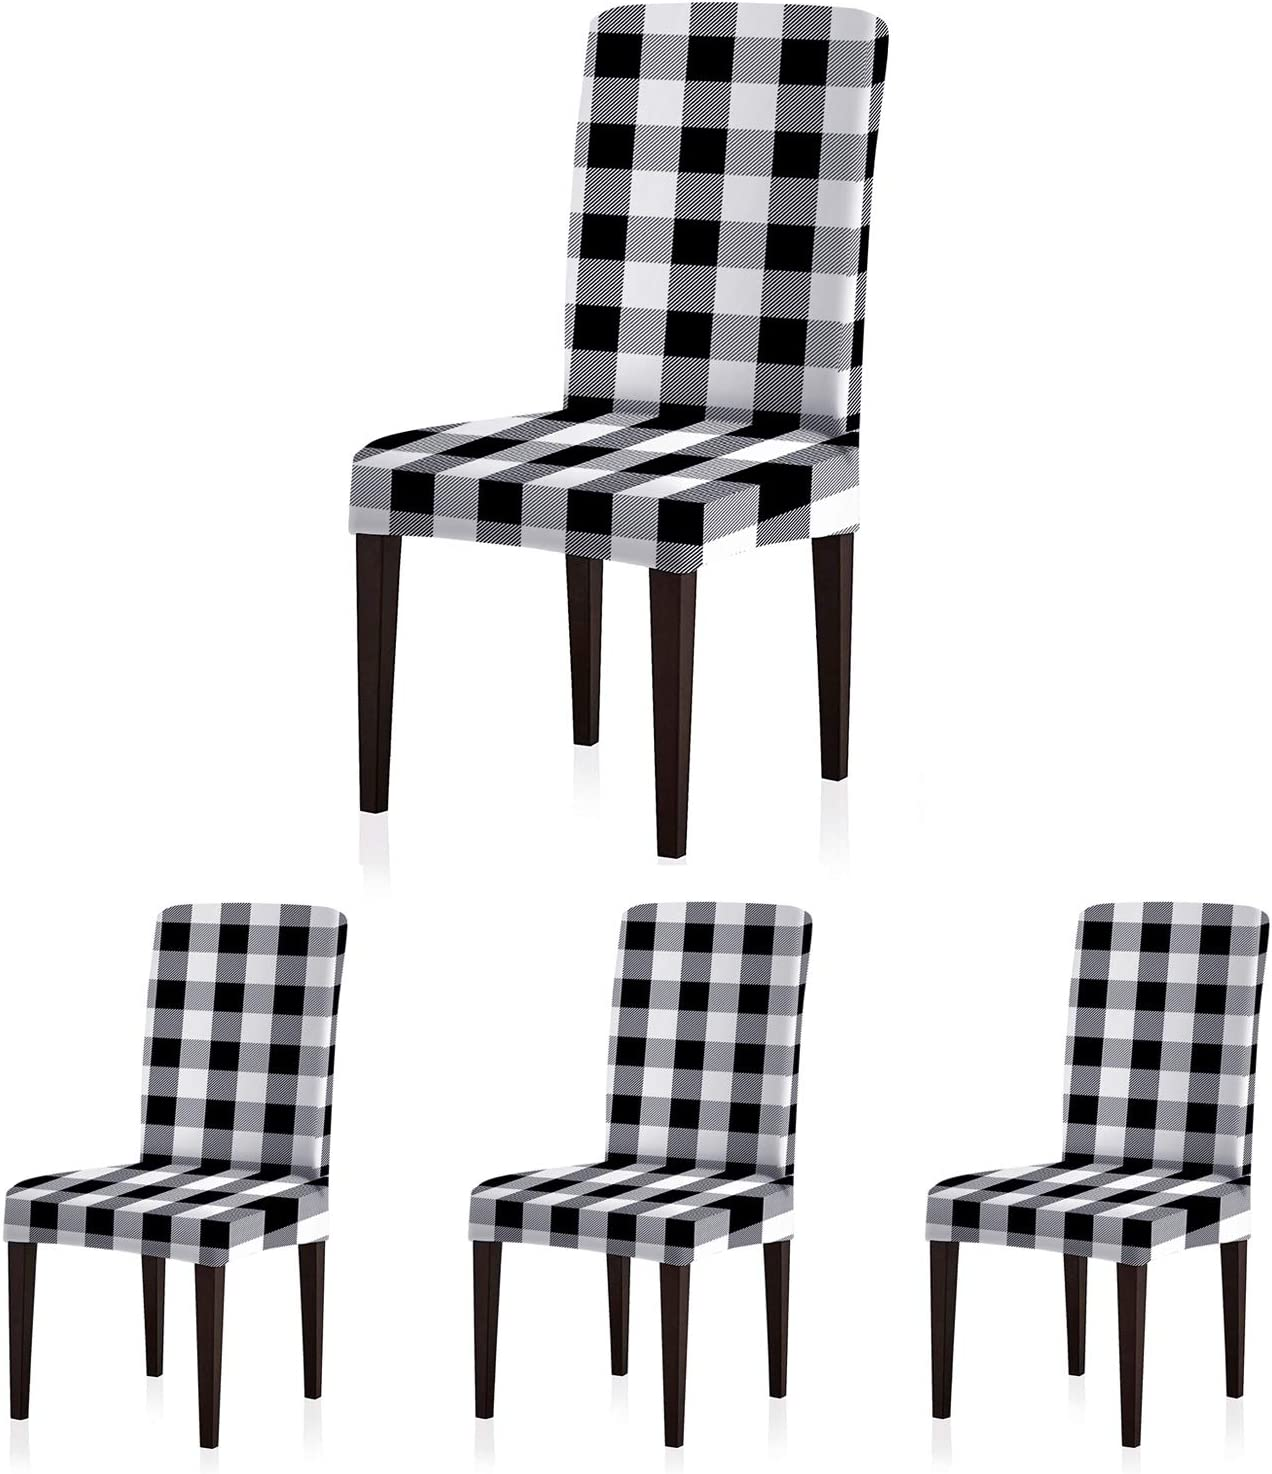 Amazon Com Colorbird Buffalo Check Spandex Chair Slipcovers Removable Universal Stretch Elastic Gingham Chair Protector Covers For Dining Room Restaurant Hotel Banquet Ceremony Set Of 4 Black White Plaid Home Kitchen